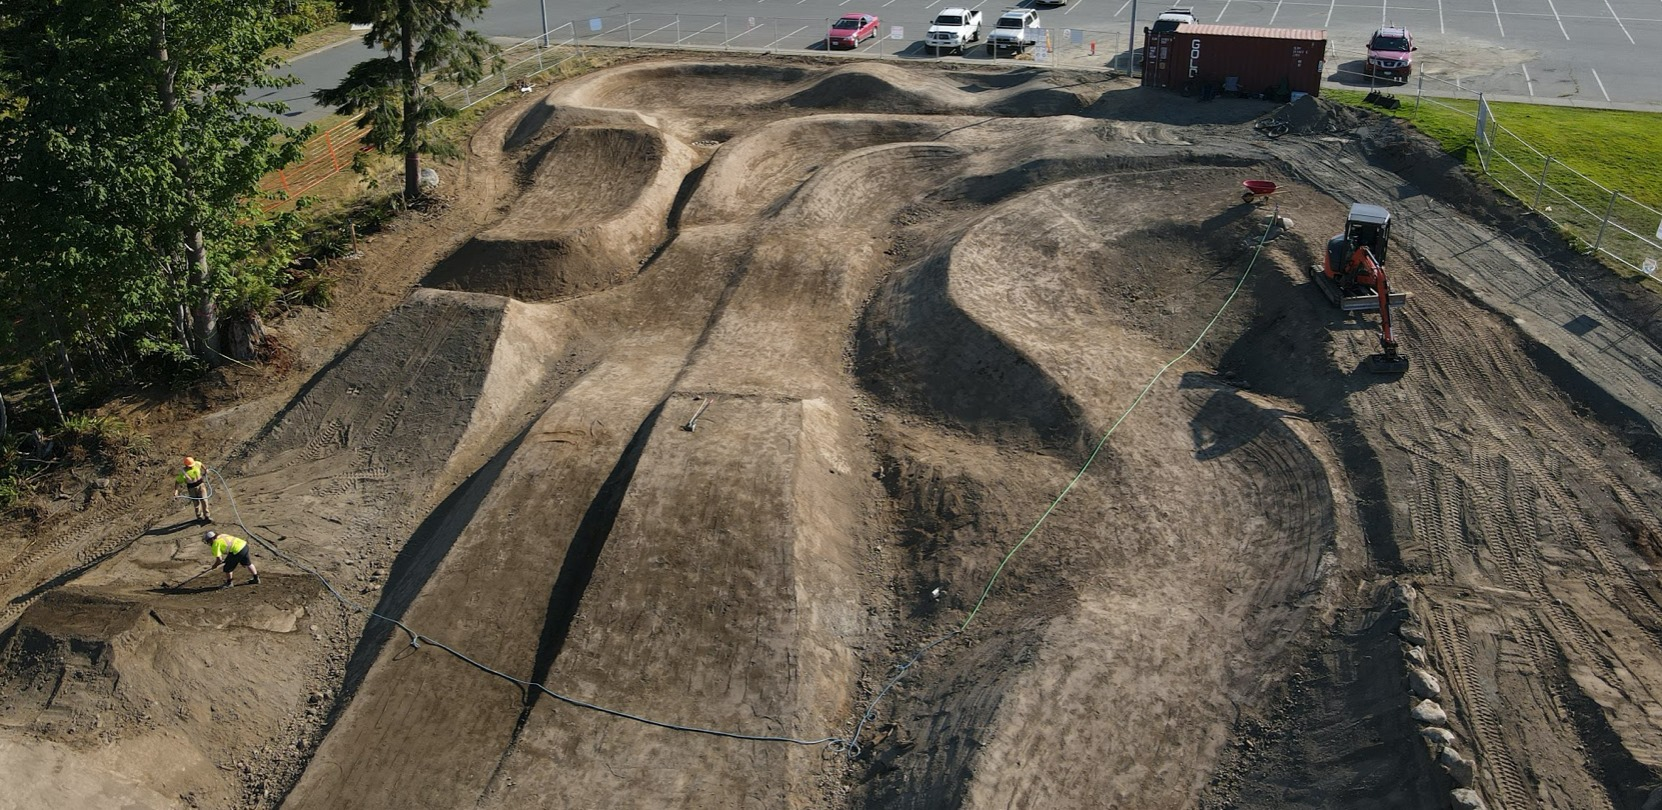 CR Bike Park Drone Image